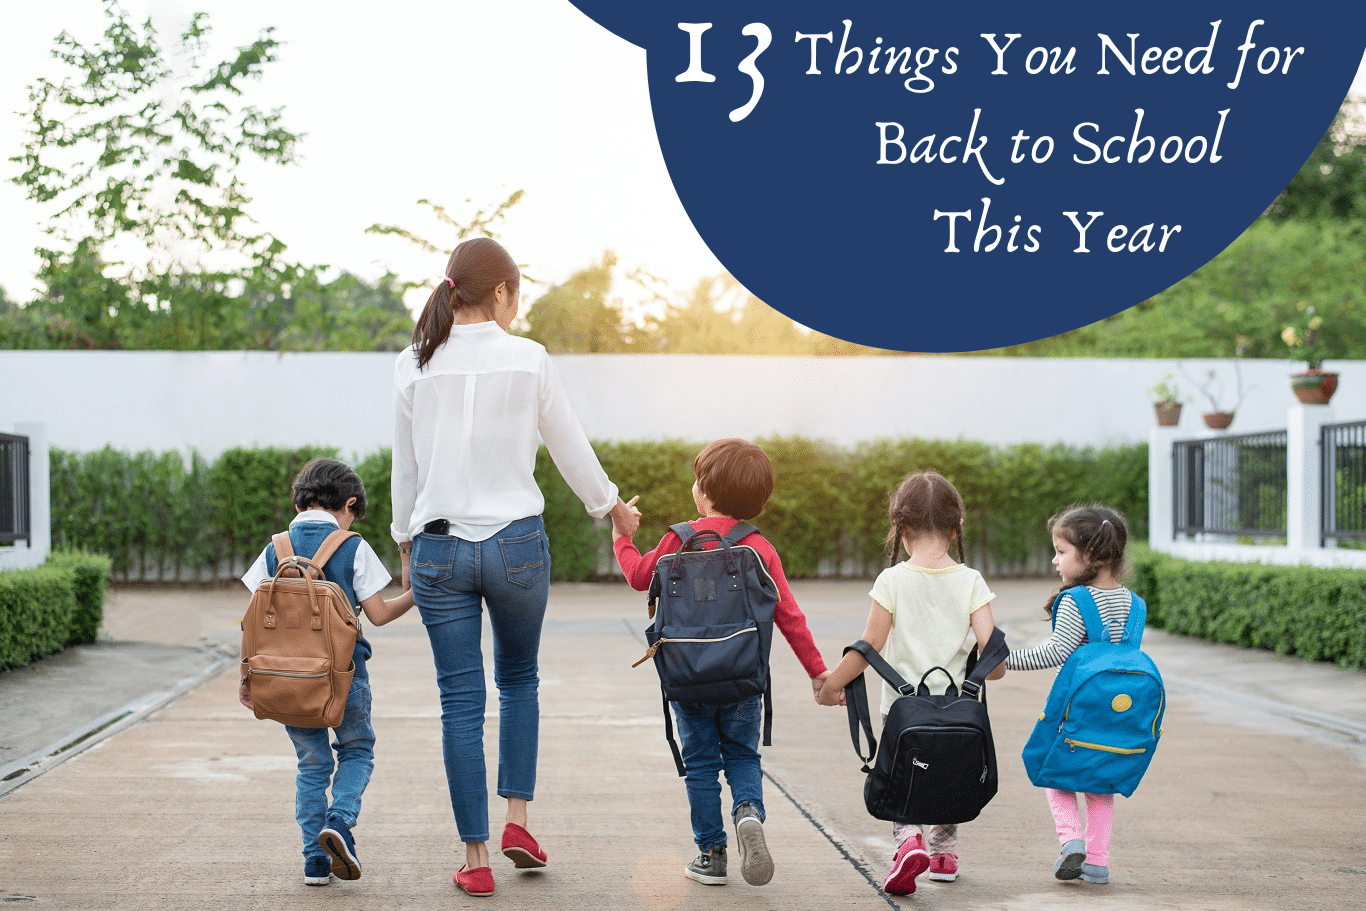 13 Things You Need for Back to School This Year